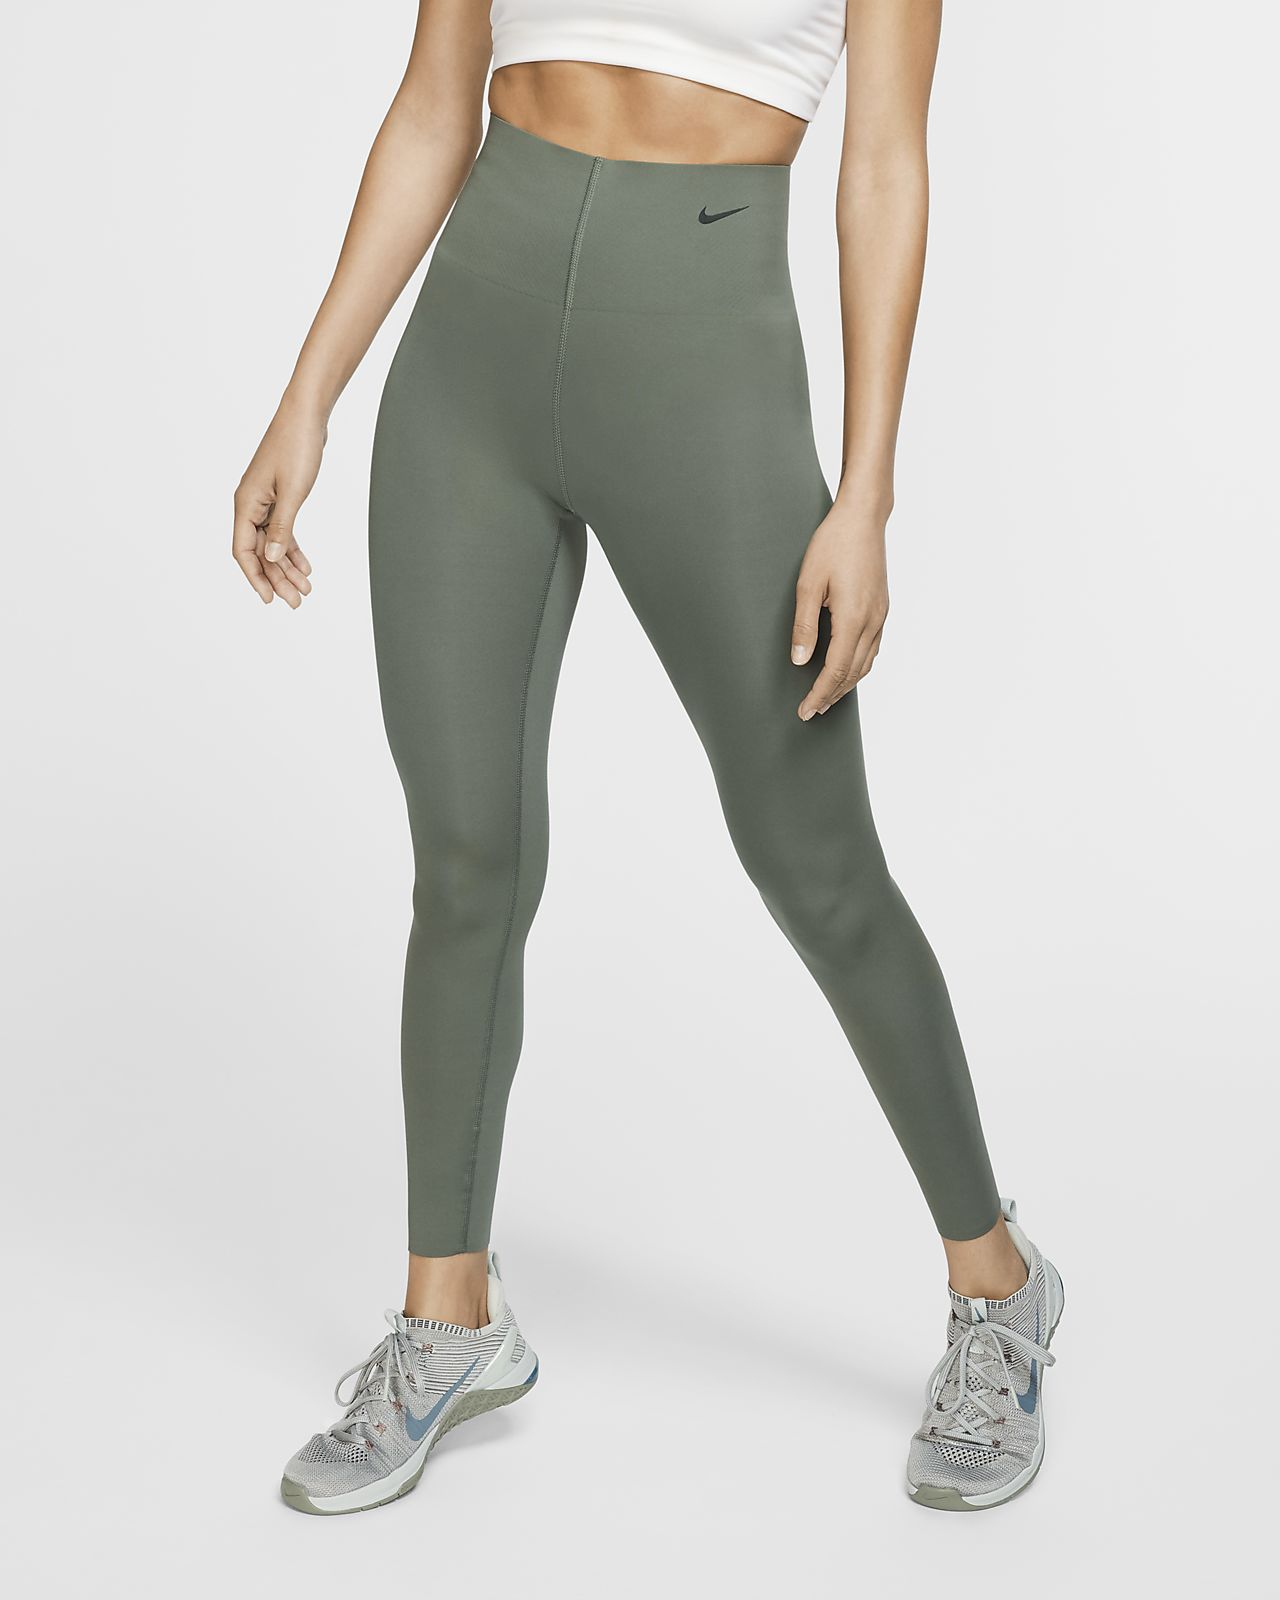 Nike Sculpt Lux Women's 7/8 Tights